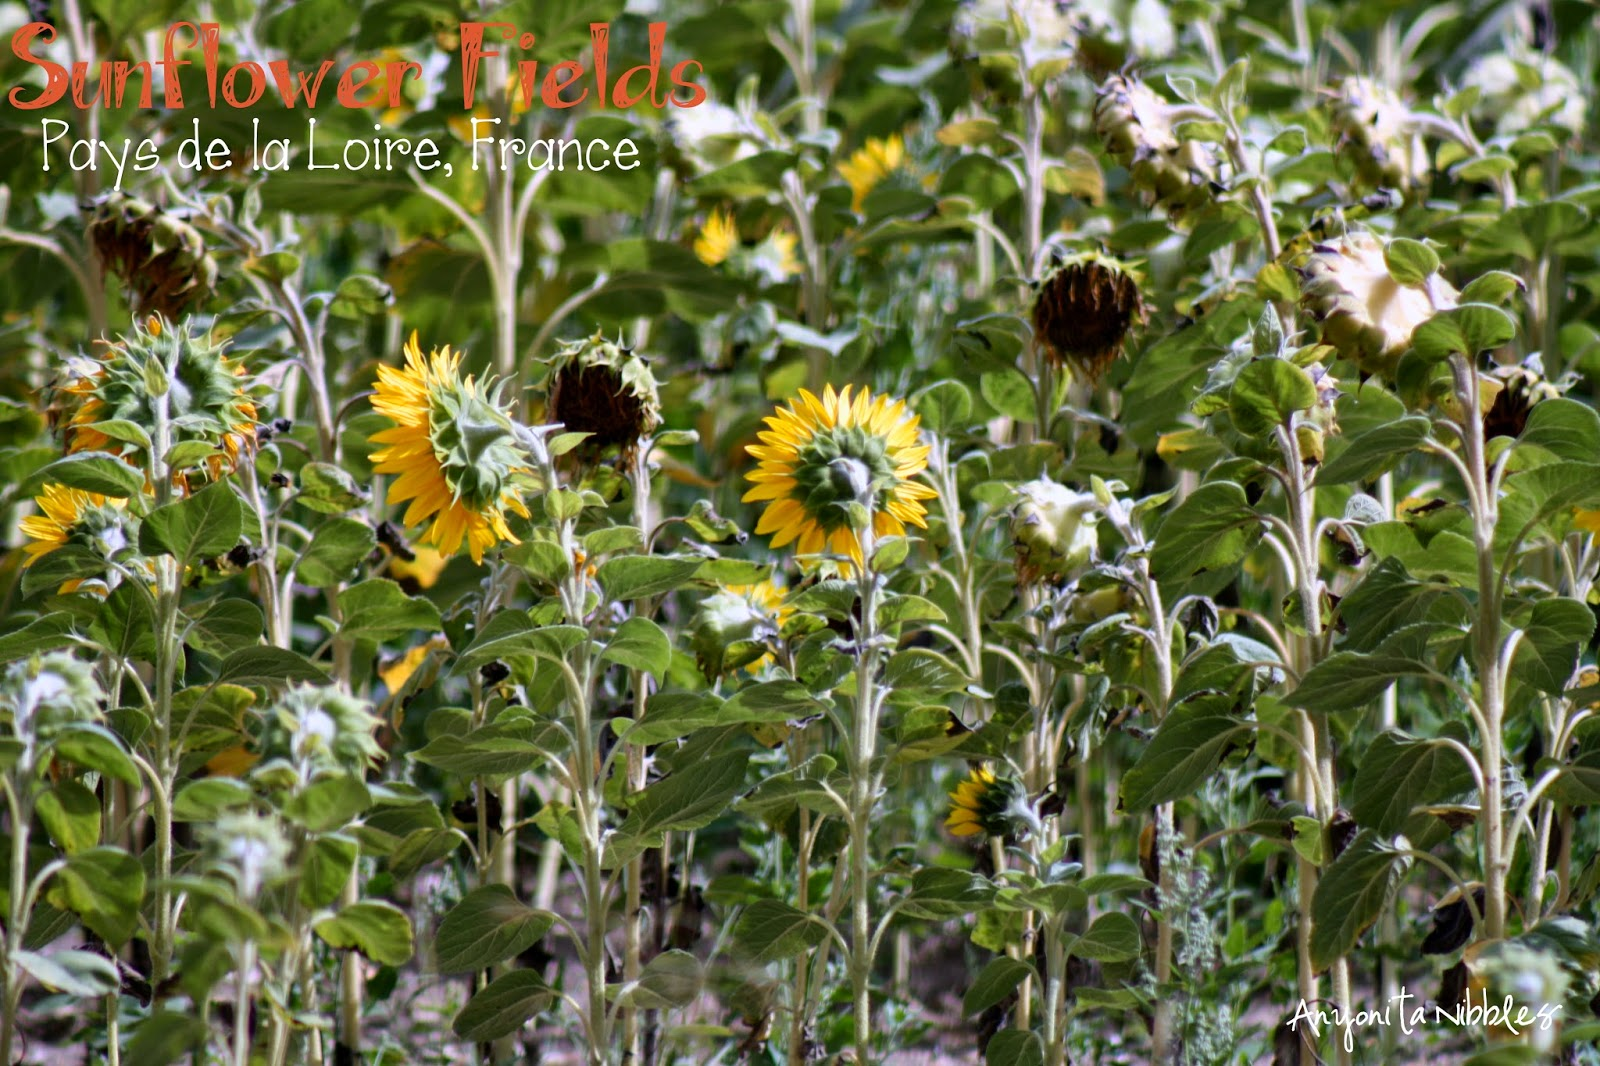 Sunflowers in France  Anyonita Nibbles